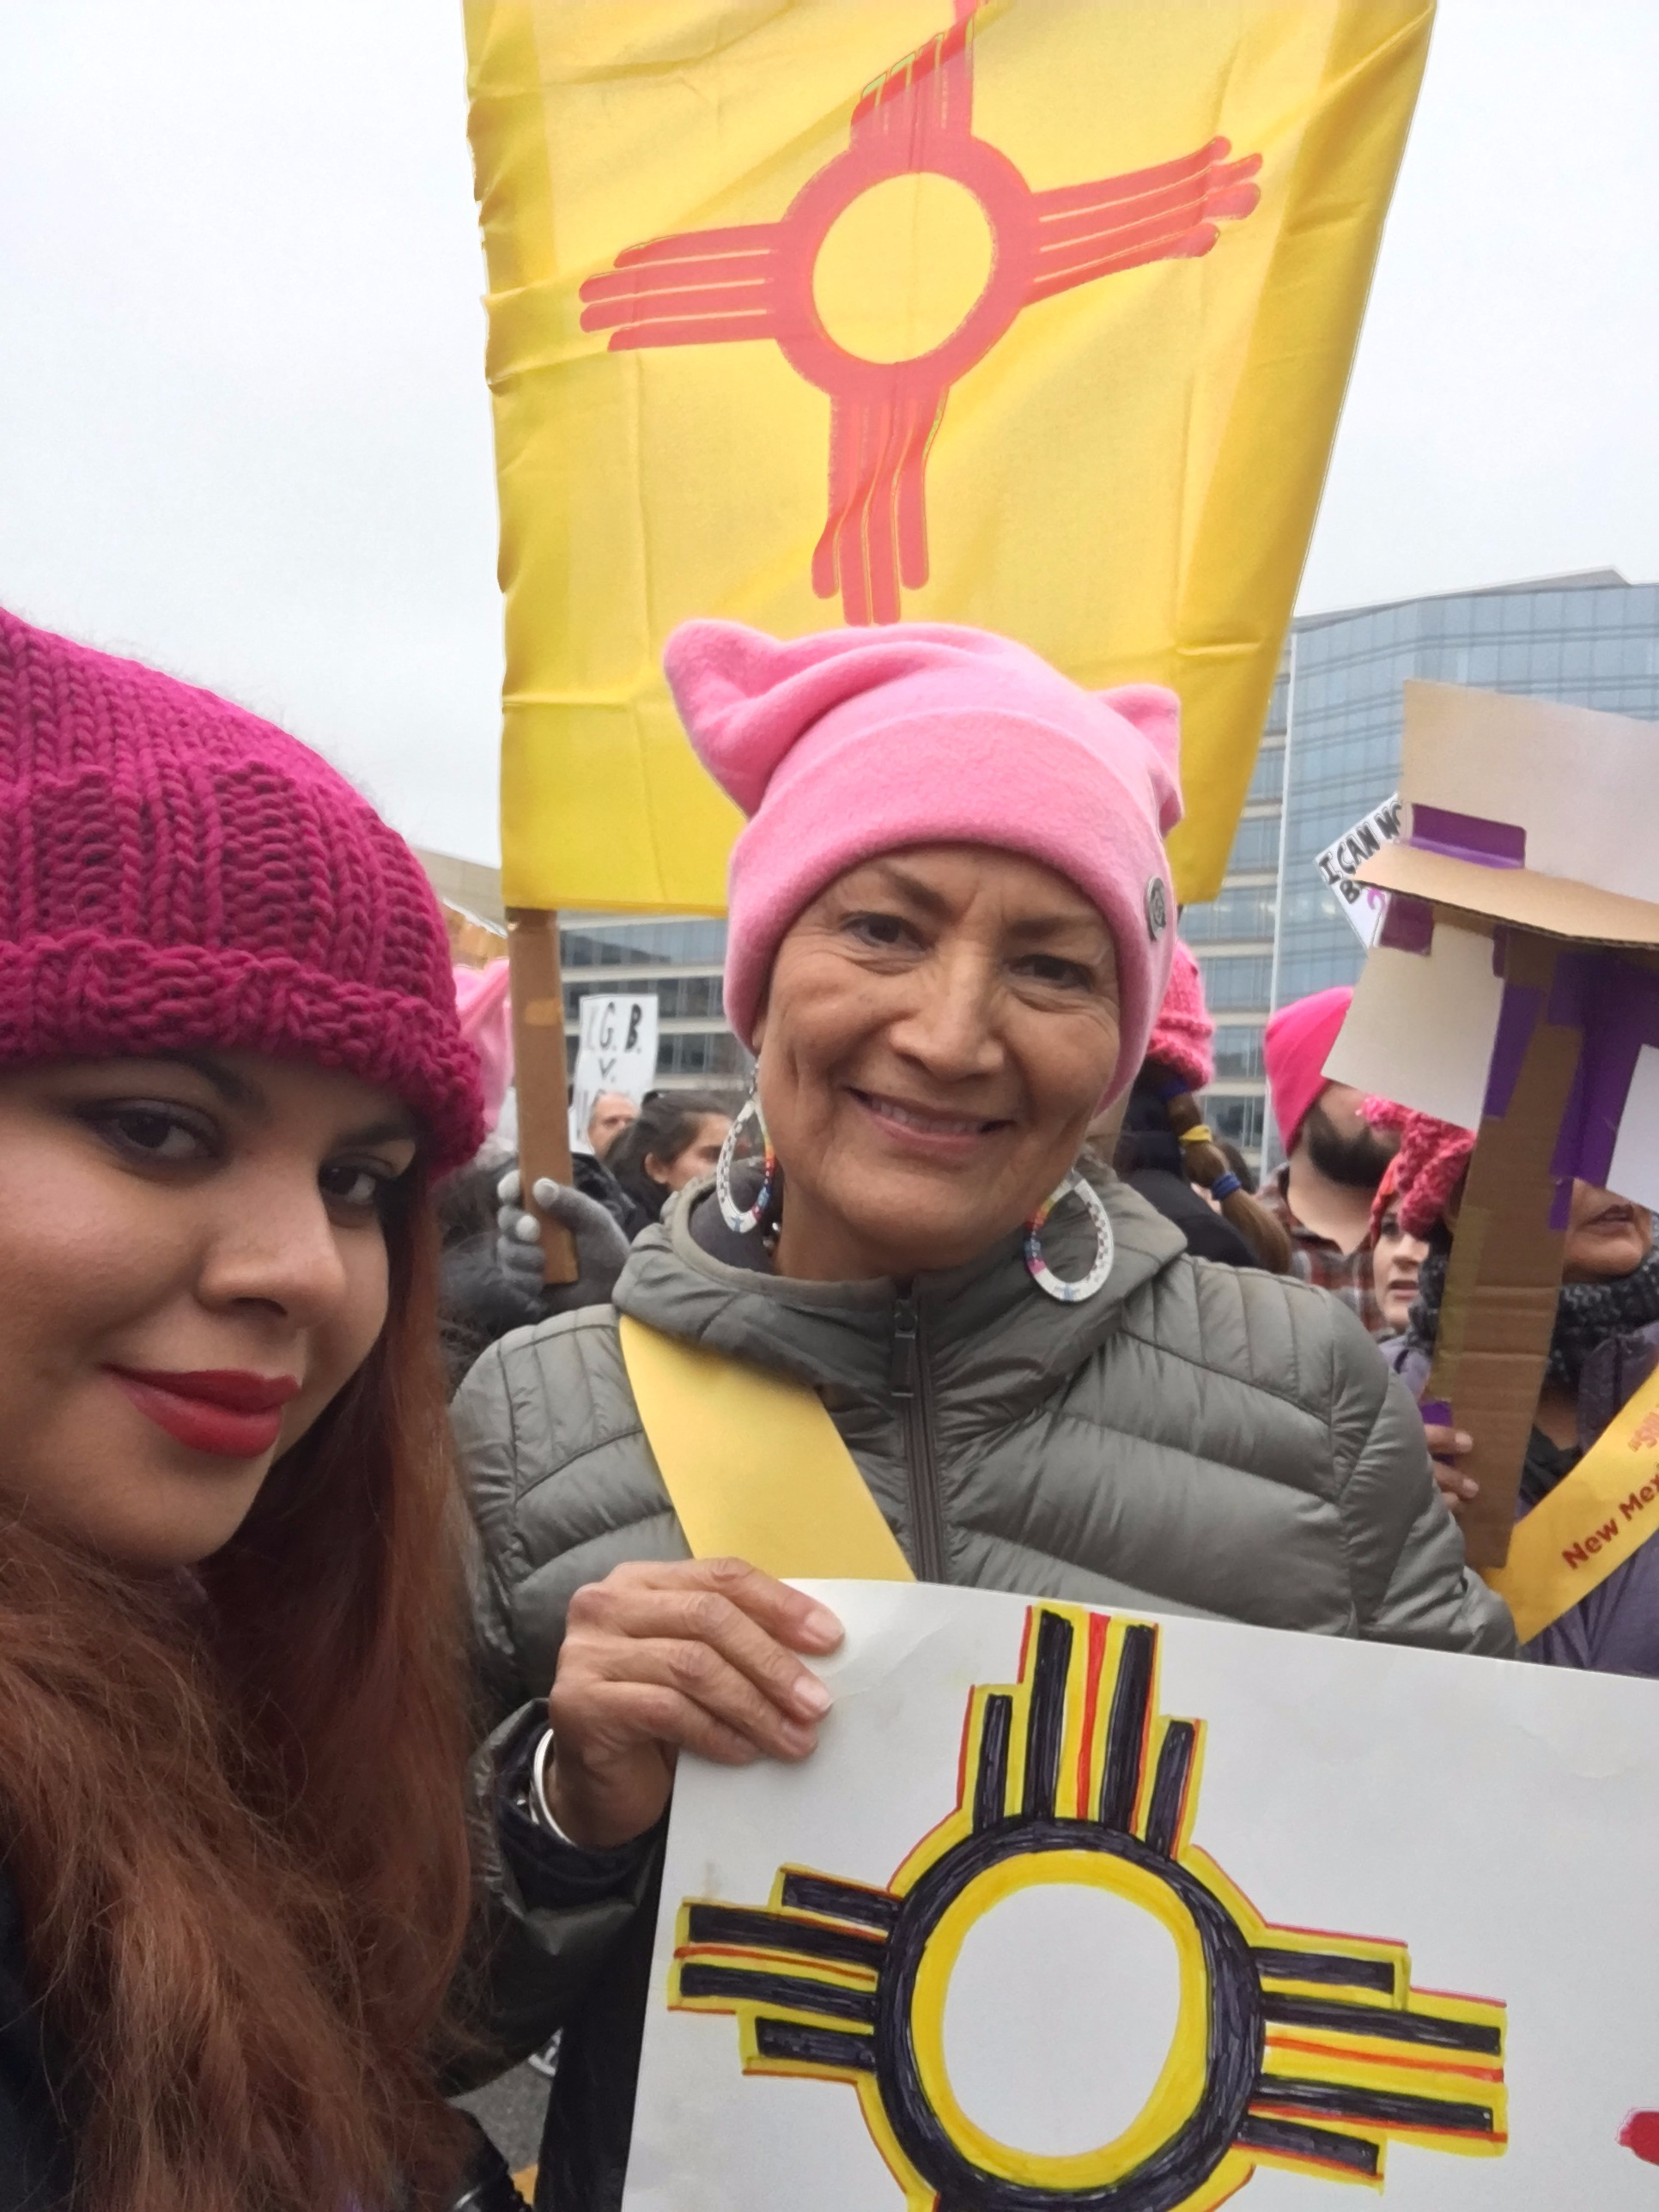 Deb & Jessica at the Women's March in D.C.